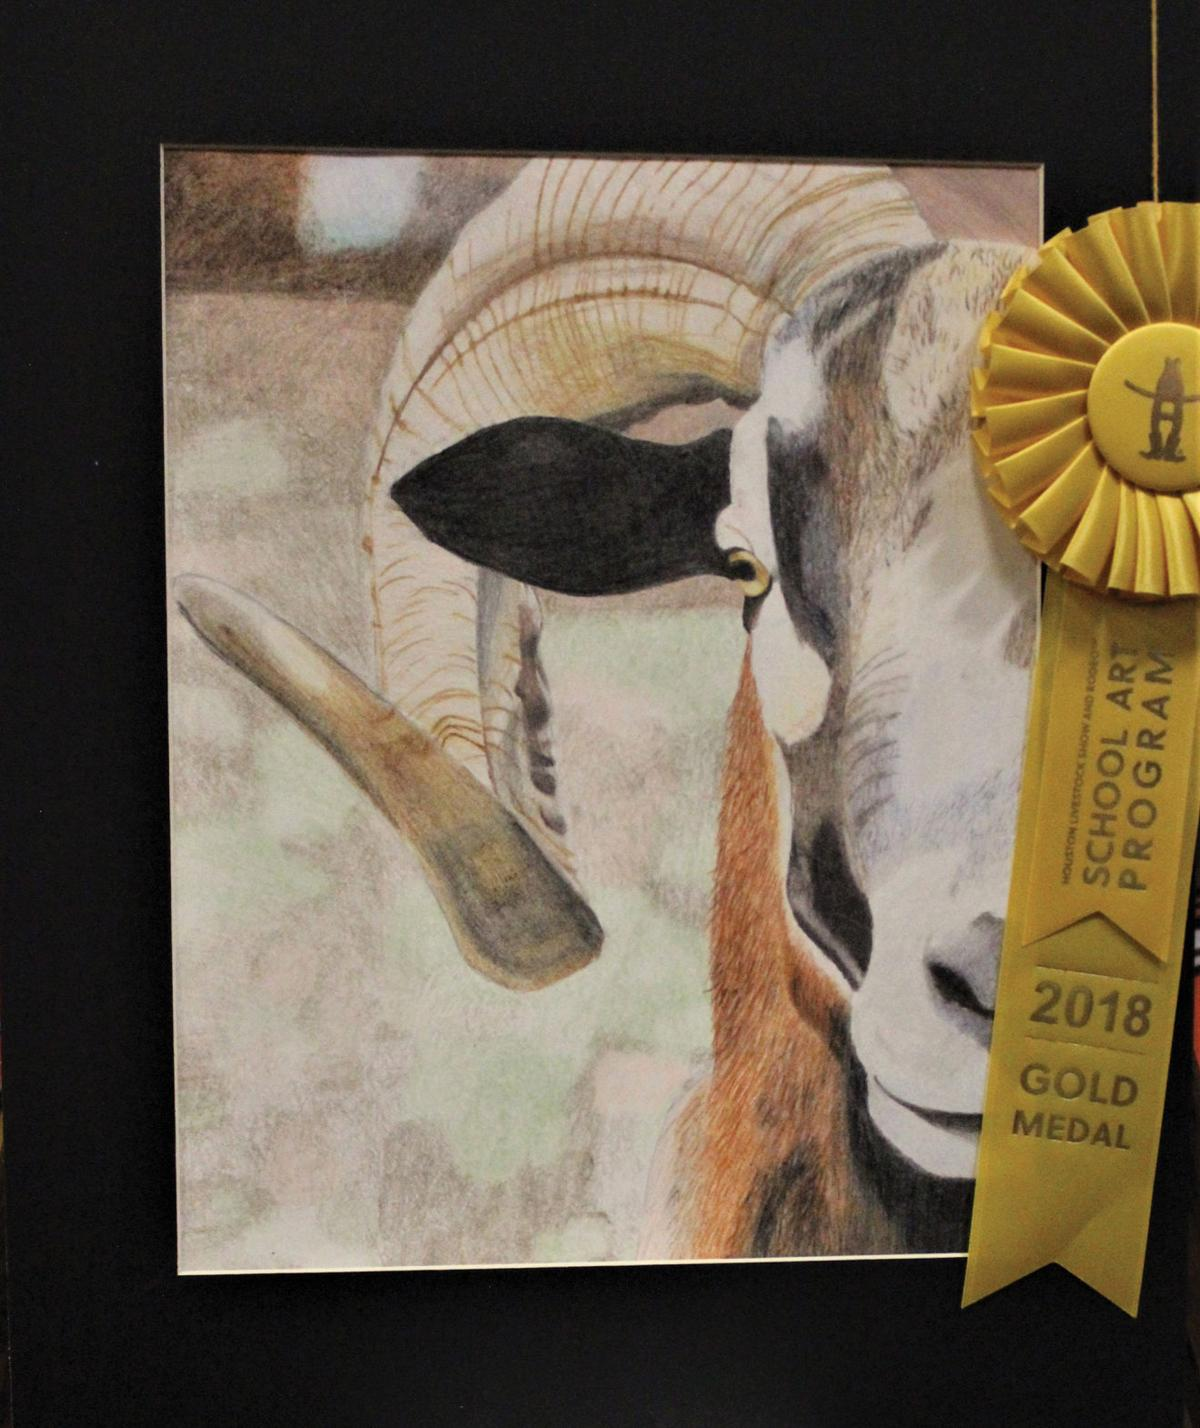 This years Houston Livestock Show and Rodeo School Art